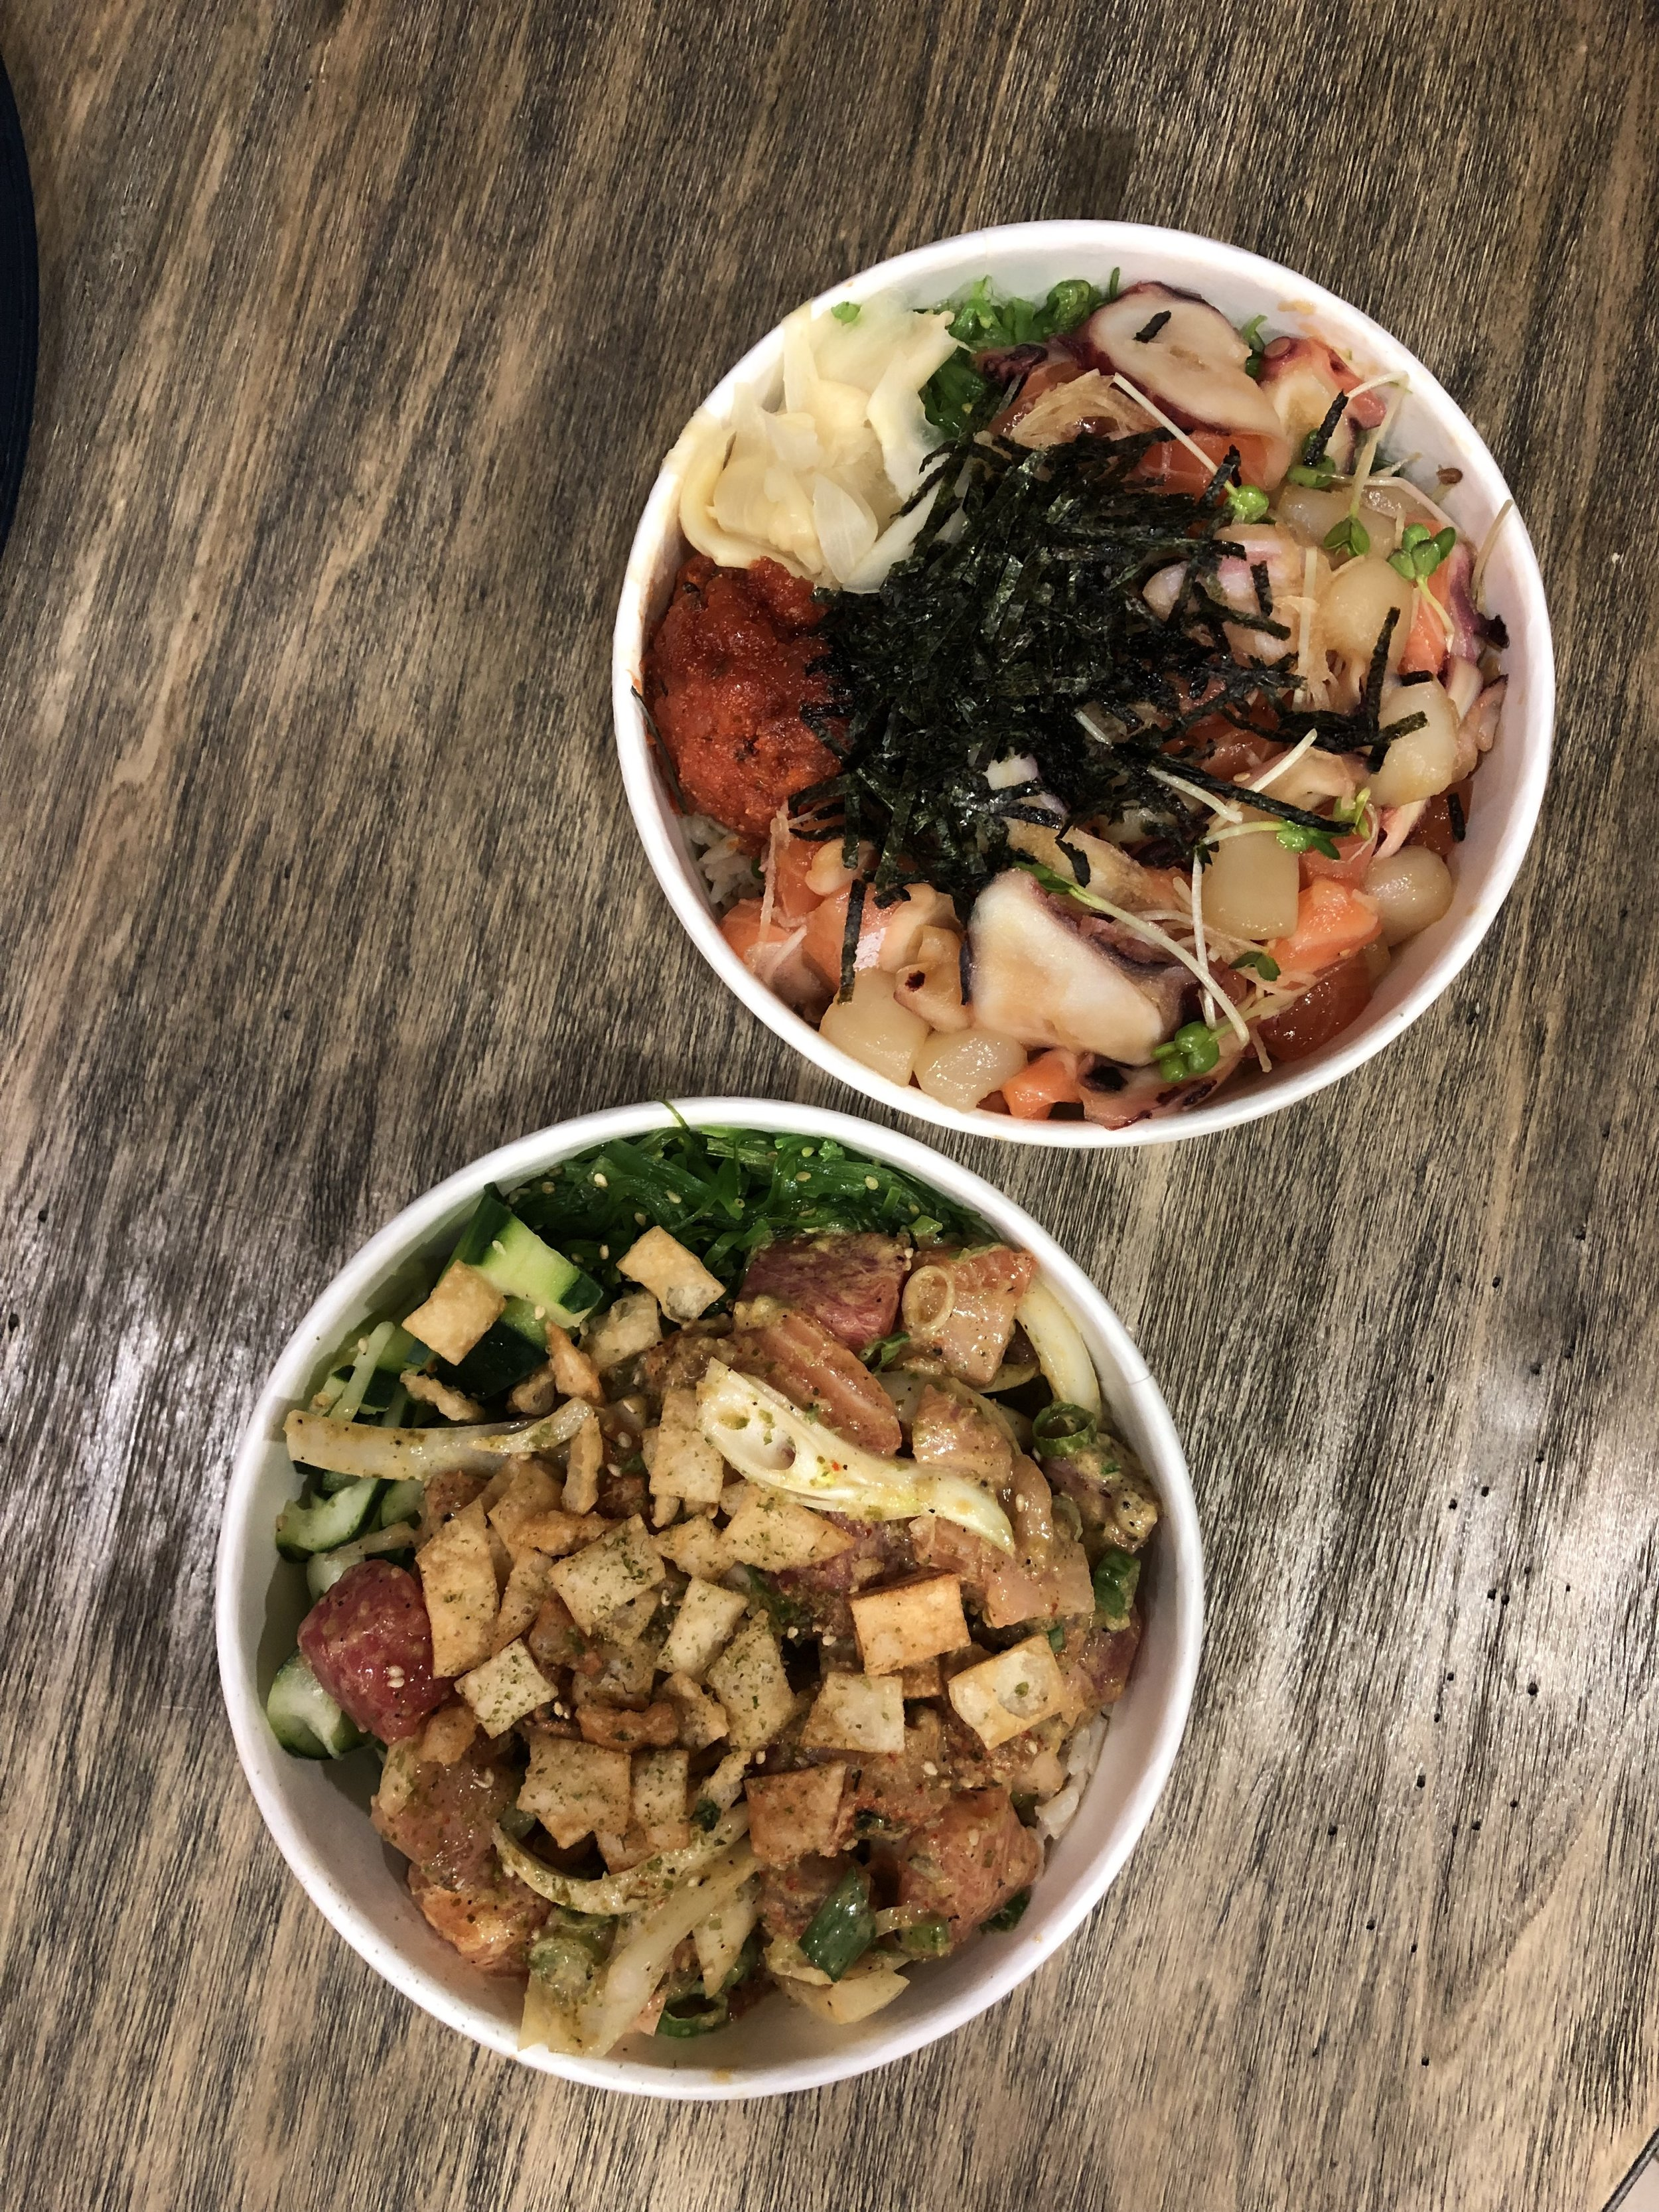 Another dine-in night called for poke bowls from  Poke Chopped . Dan customized his bowl while I went for a specialty bowl (The Chopper). The proportions were generous - neither one of us finished our bowl!